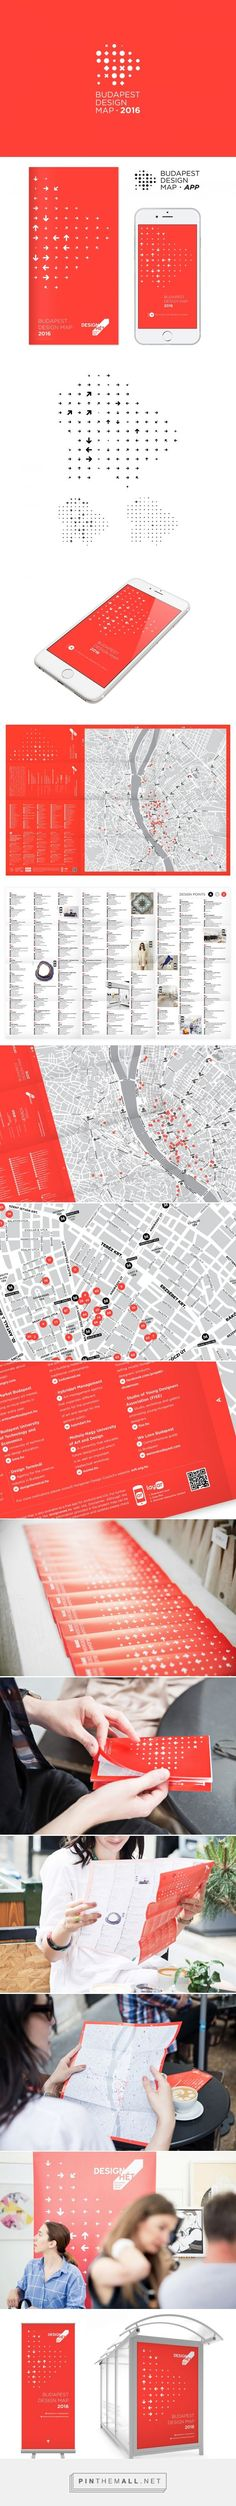 Budapest Design Map, 2016 on Behance http://jrstudioweb.com/diseno-grafico/diseno-de-logotipos/